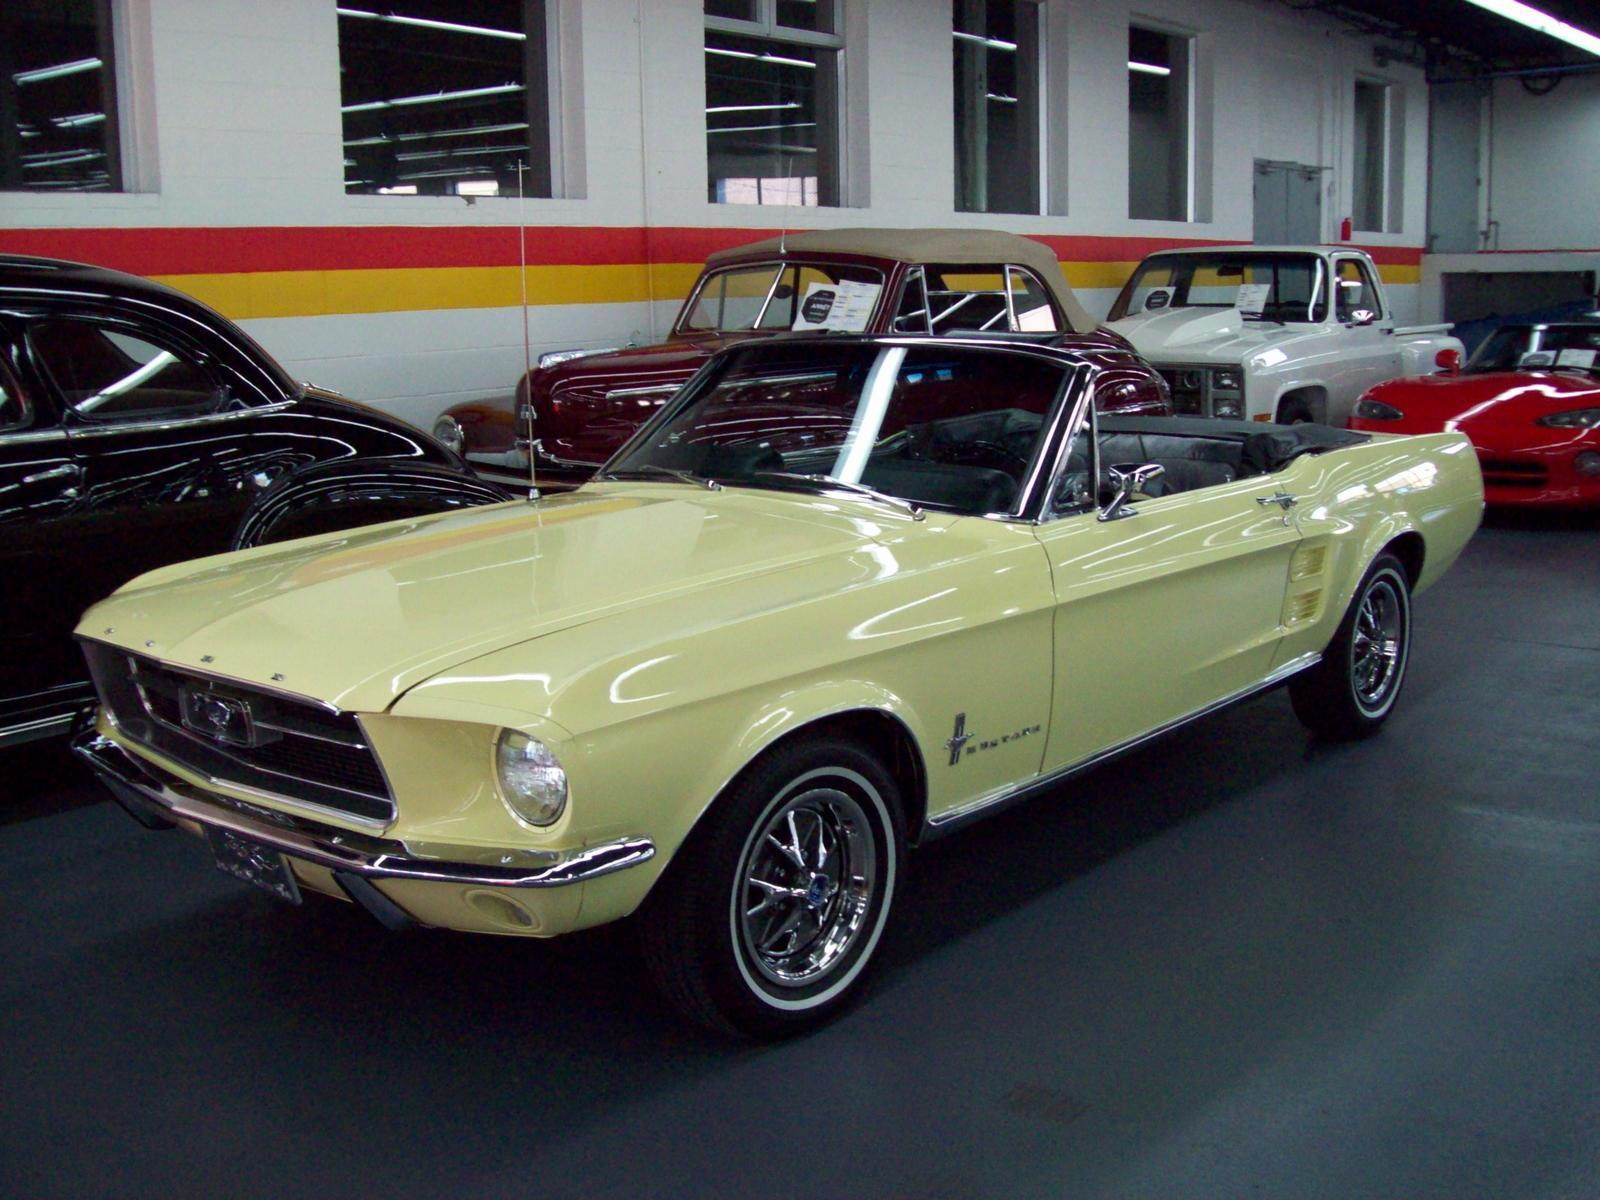 Used  Ford Mustang For Sale In Saint Leonard John Scotti Classic Cars Hr Y